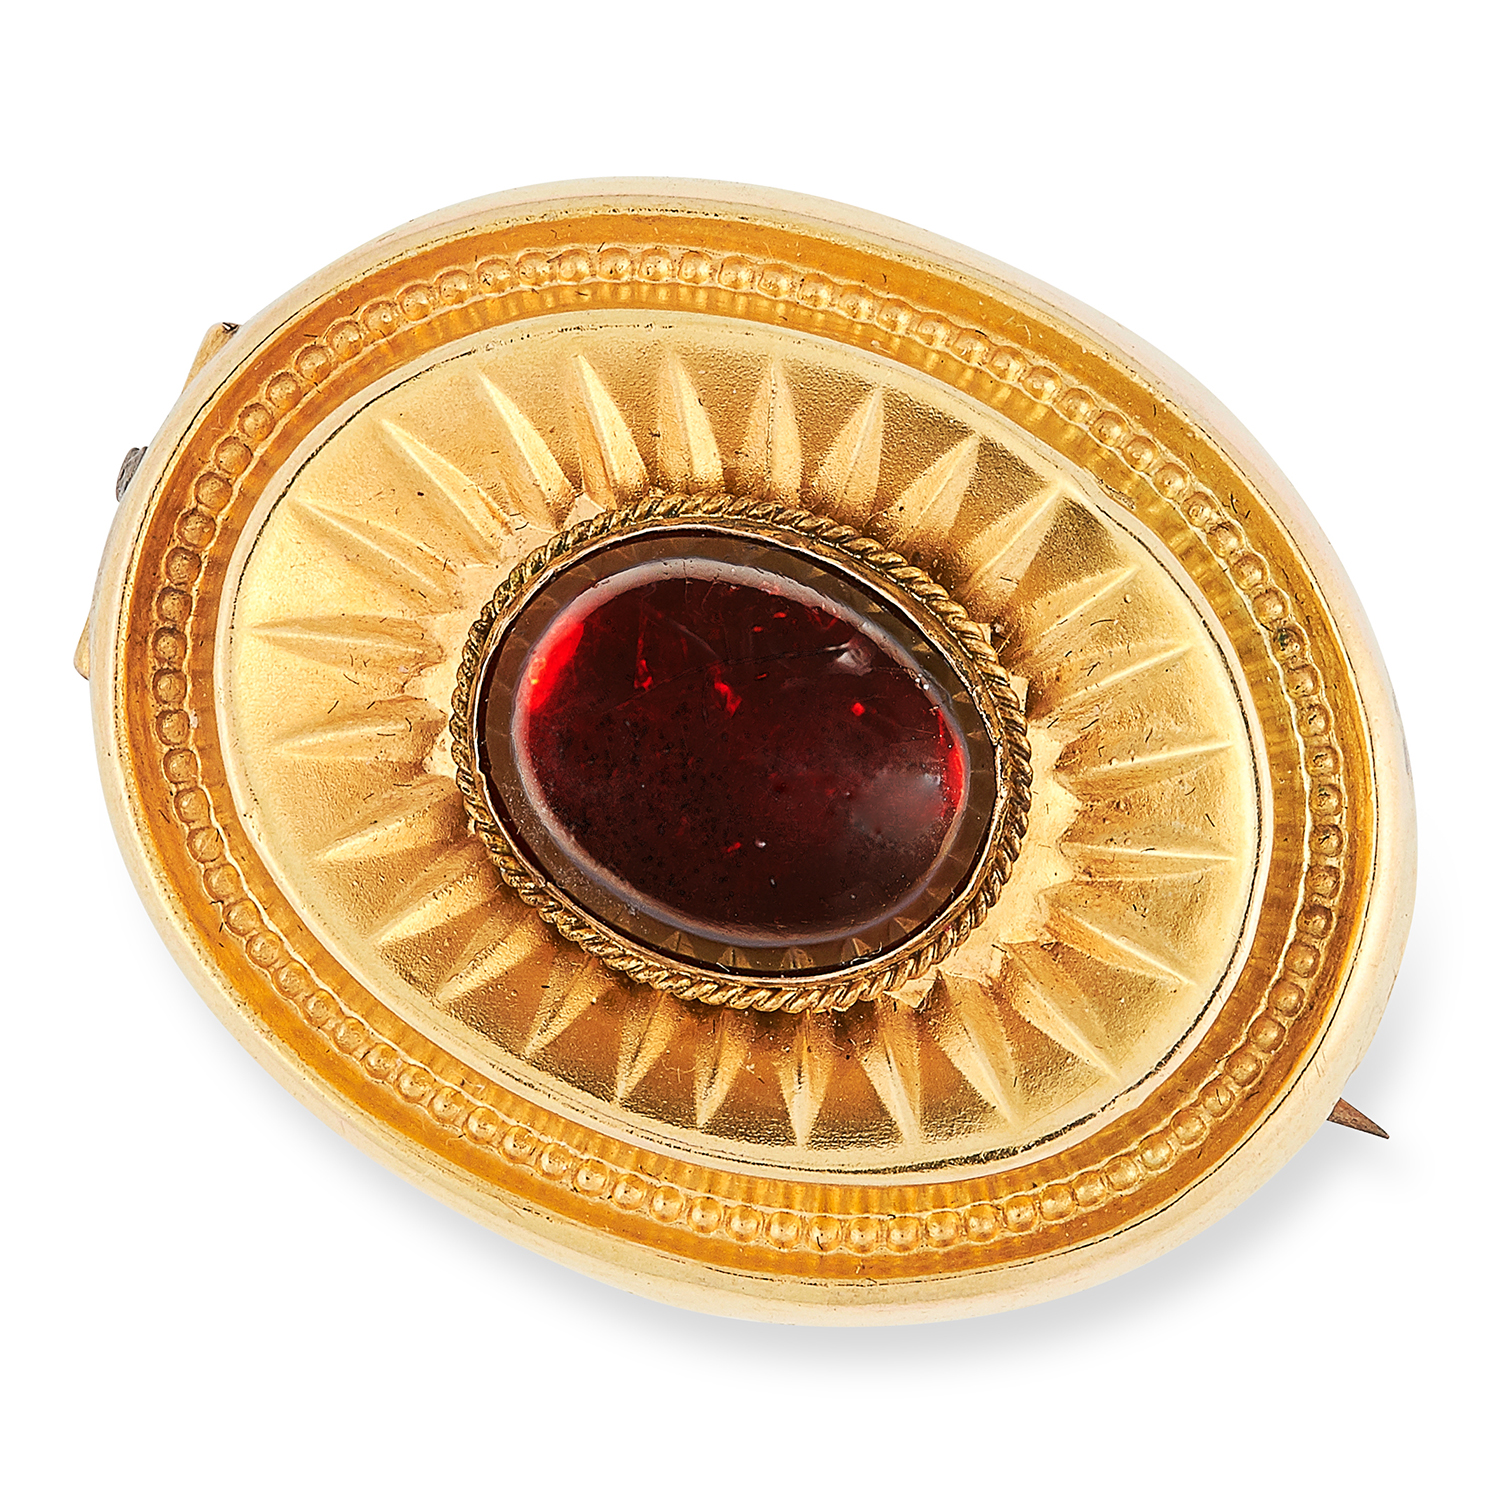 ANTIQUE VICTORIAN GARNET BROOCH set with a cabochon garnet, with glass locket back, 3cm, 7.2g.